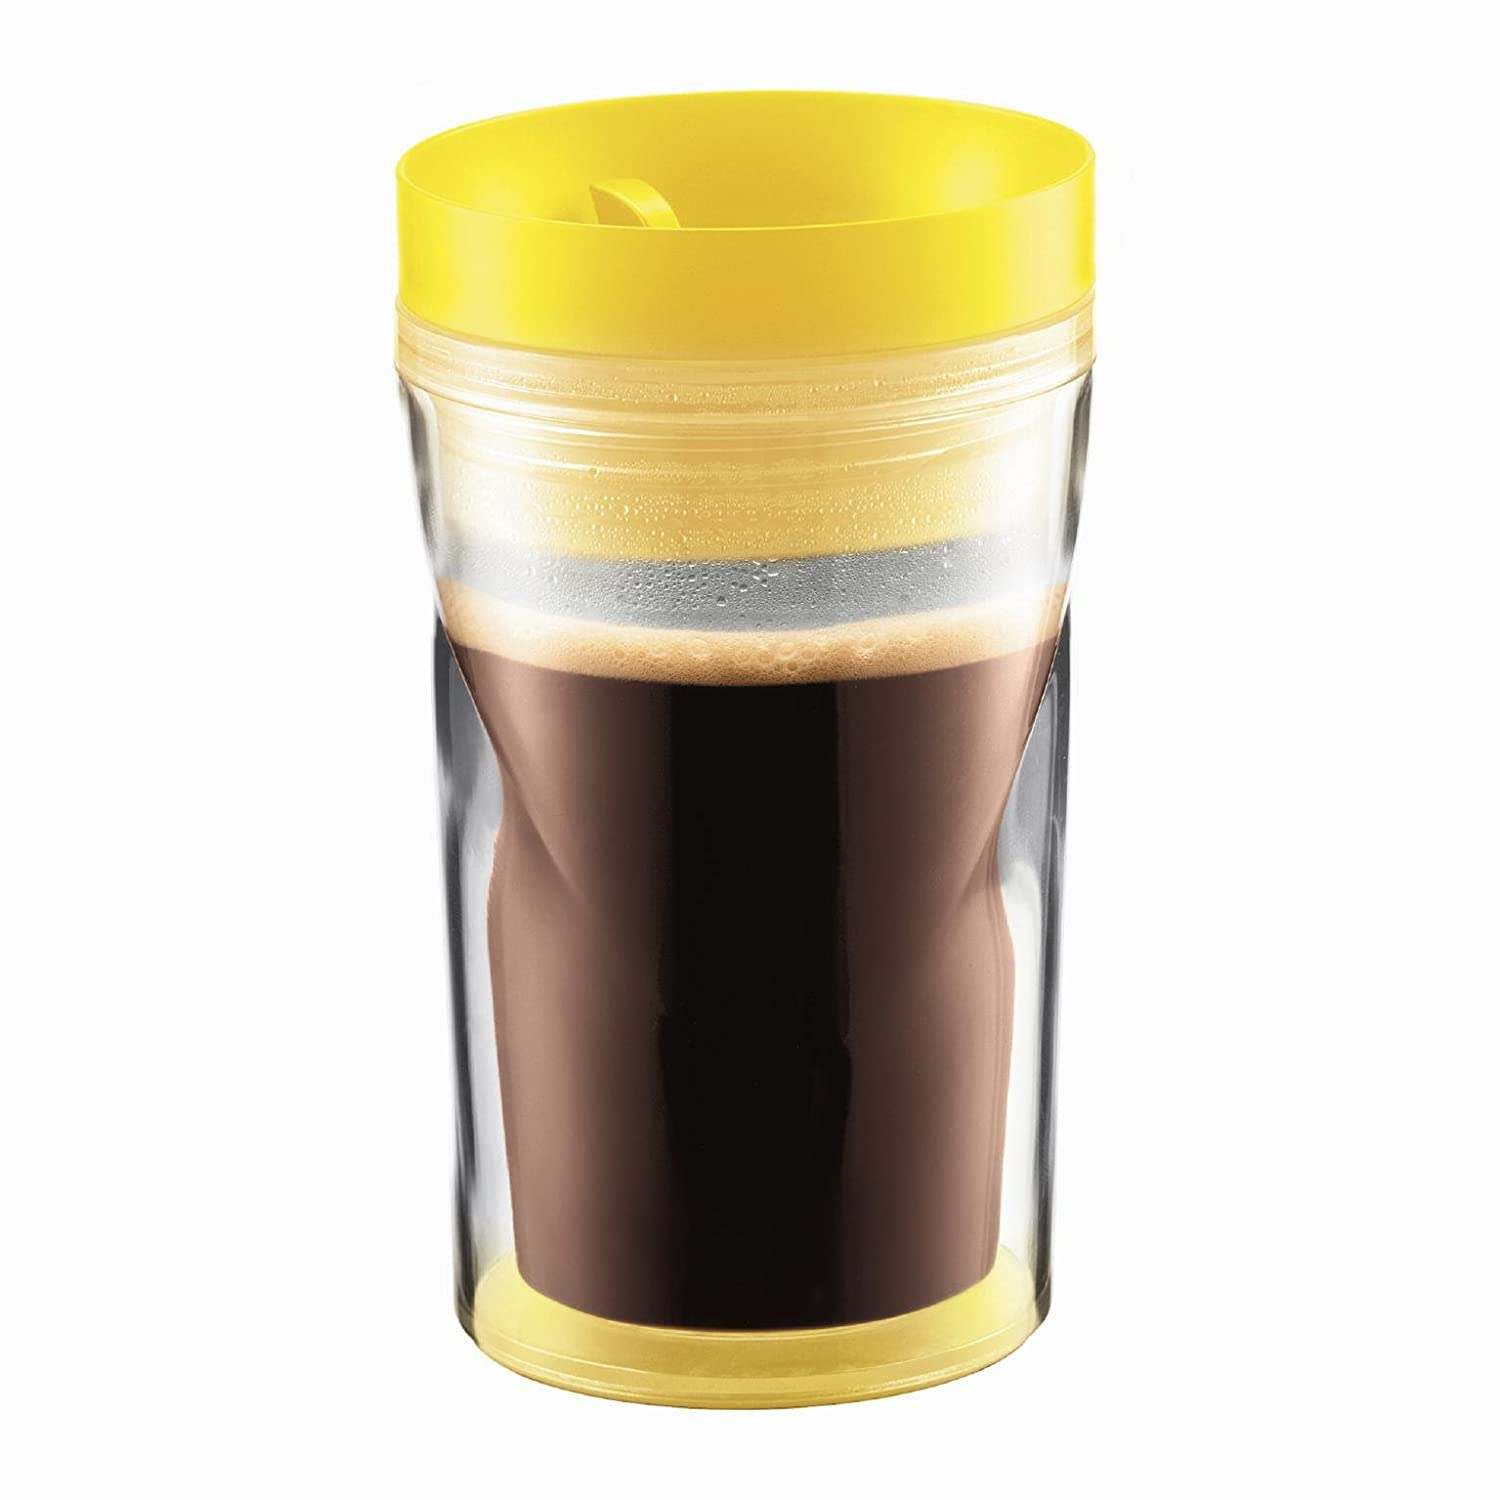 Coffee Maker That Fits Travel Mug : Travel Mugs To Fit Under Keurig Coffee Makers